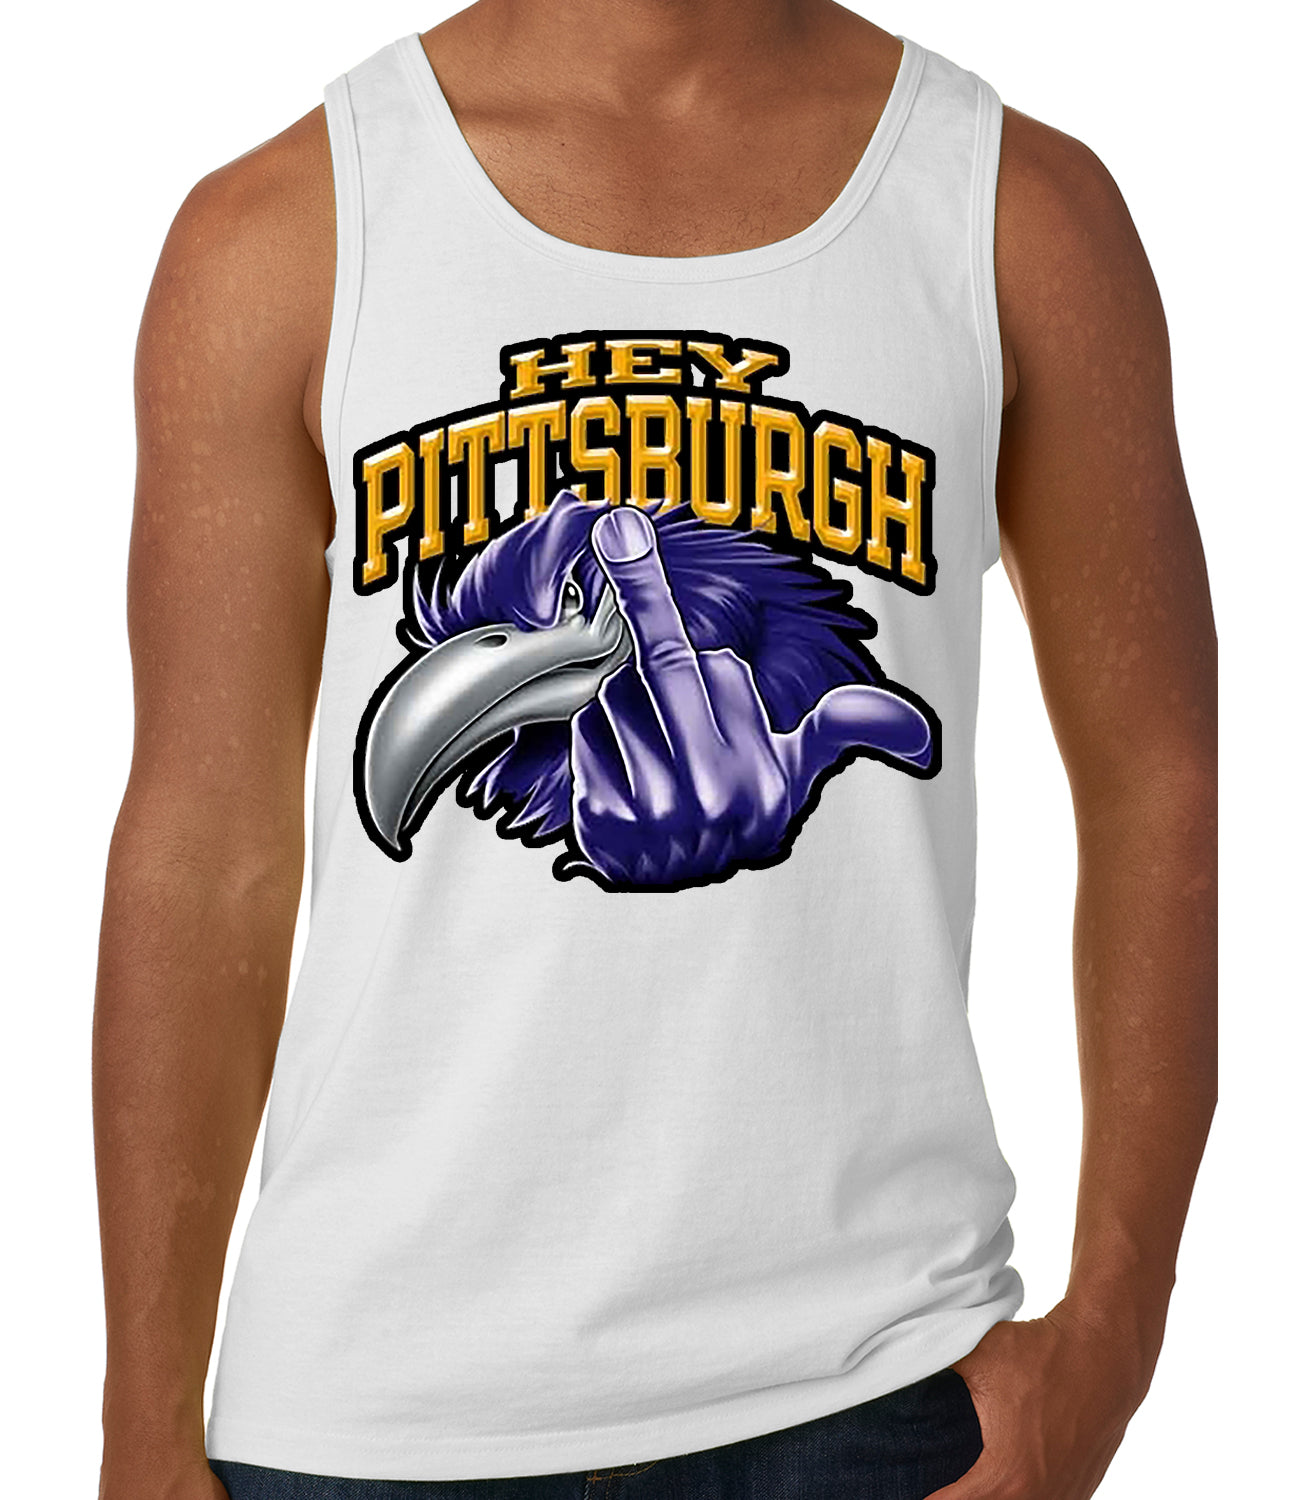 Baltimore Fan - Hey Pittsburgh Tank Top